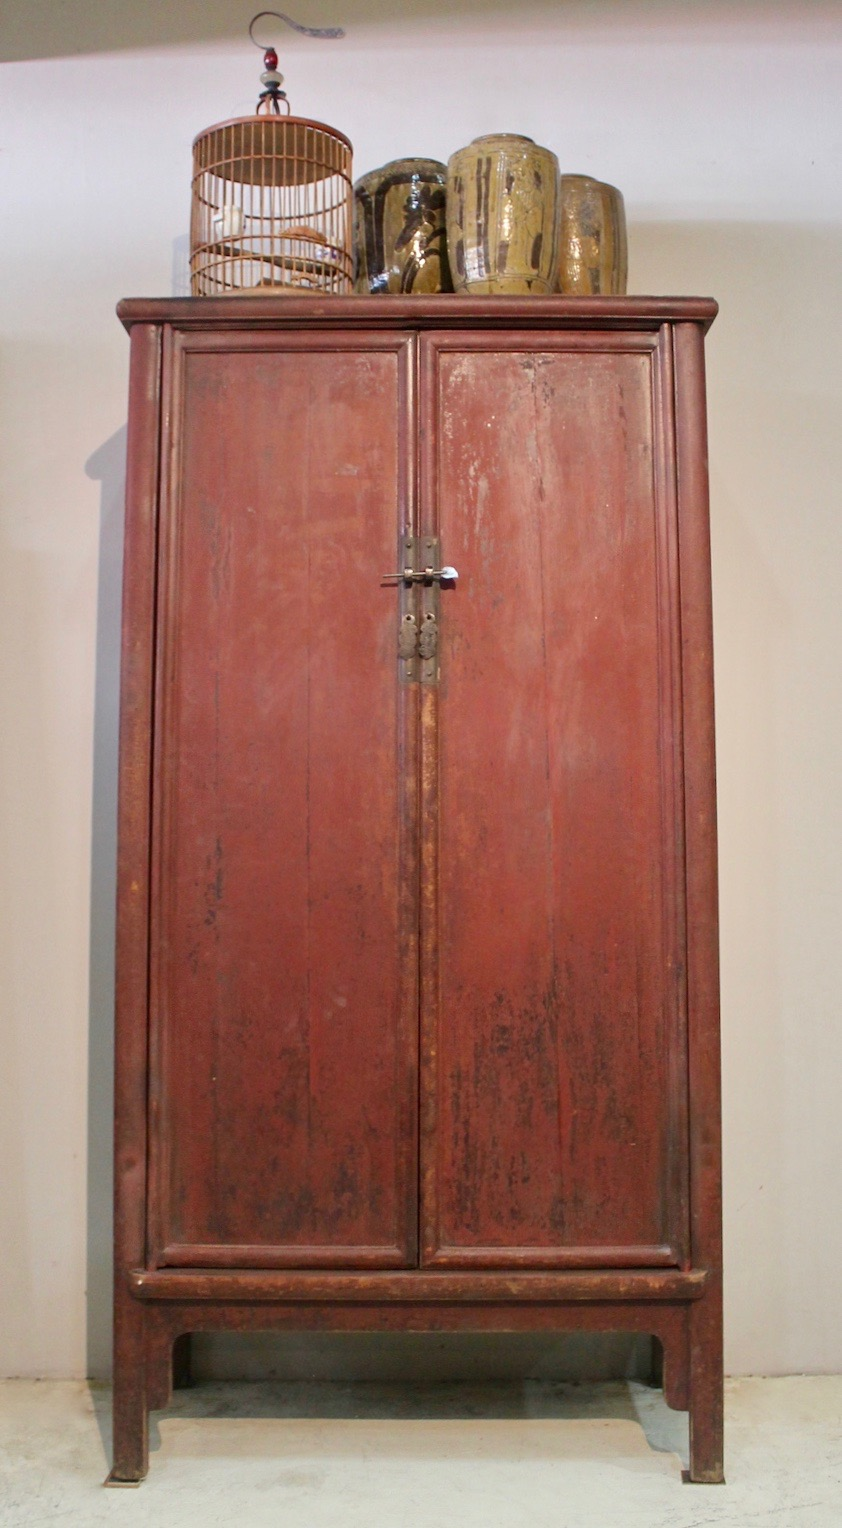 Antique tall red cabinet (original colour) from Zhejiang, China